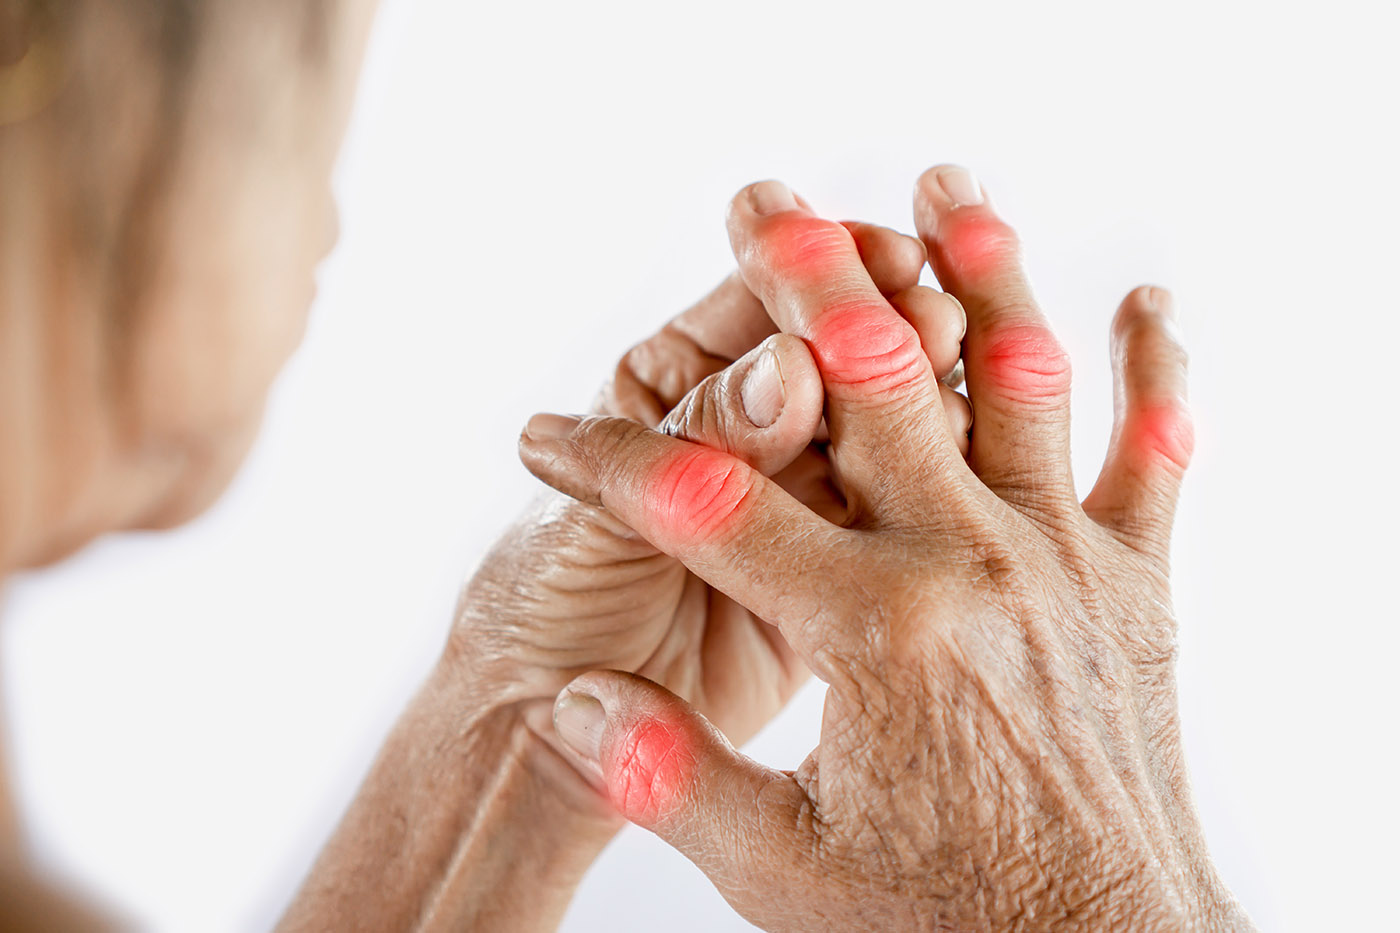 Asian woman hand suffering from joint pain with gout in finger - Arthritis  Research | Arthritis National Research Foundation